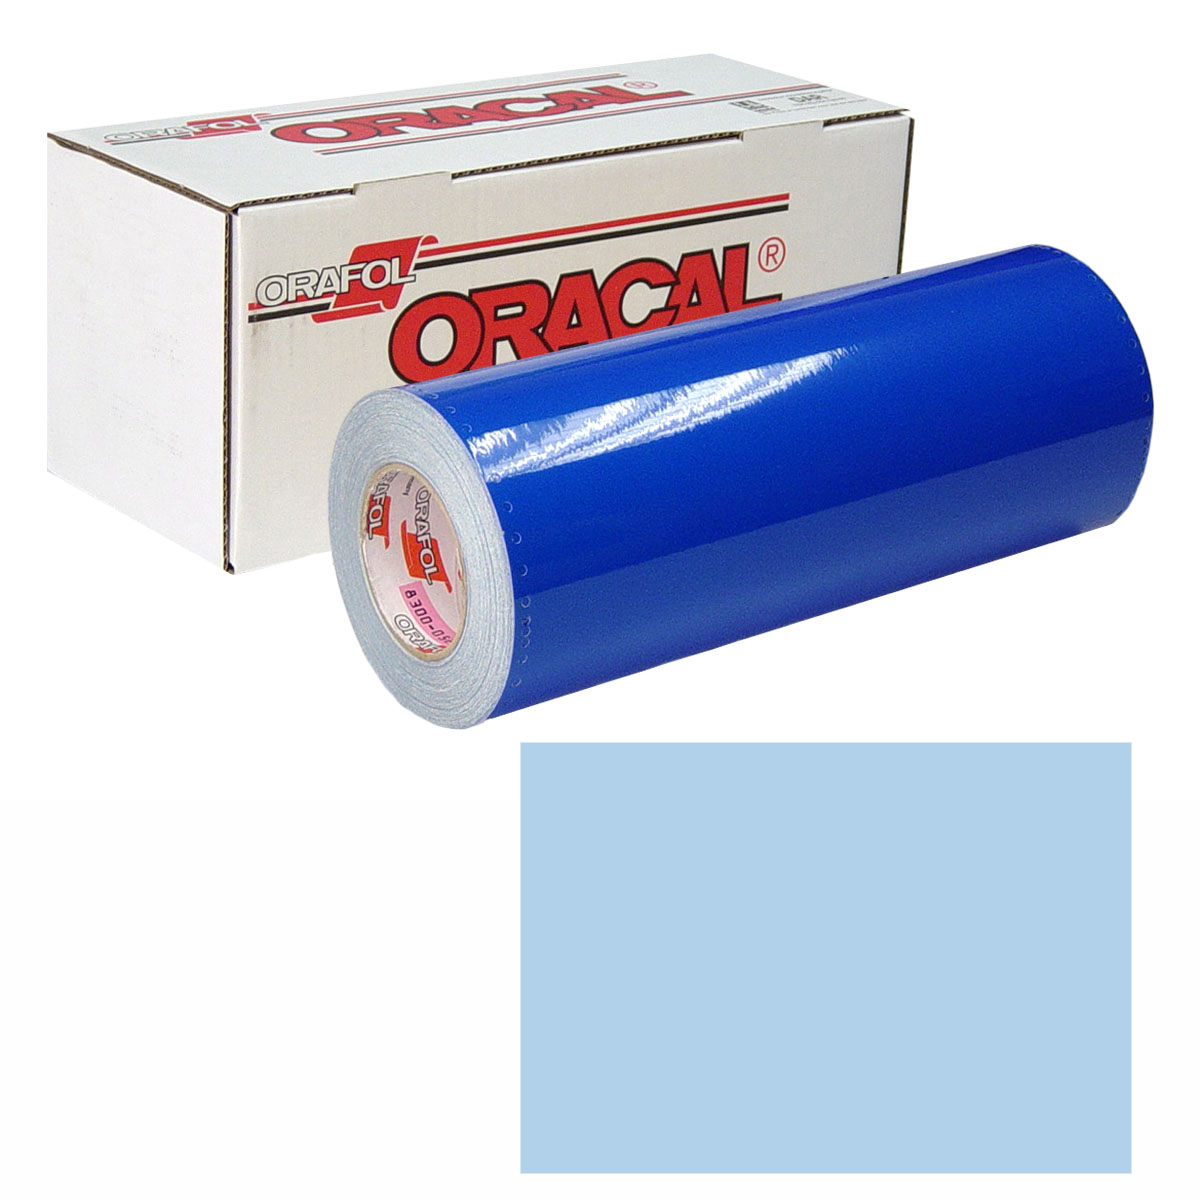 ORACAL 631 Unp 48In X 10Yd 172 Powder Blue